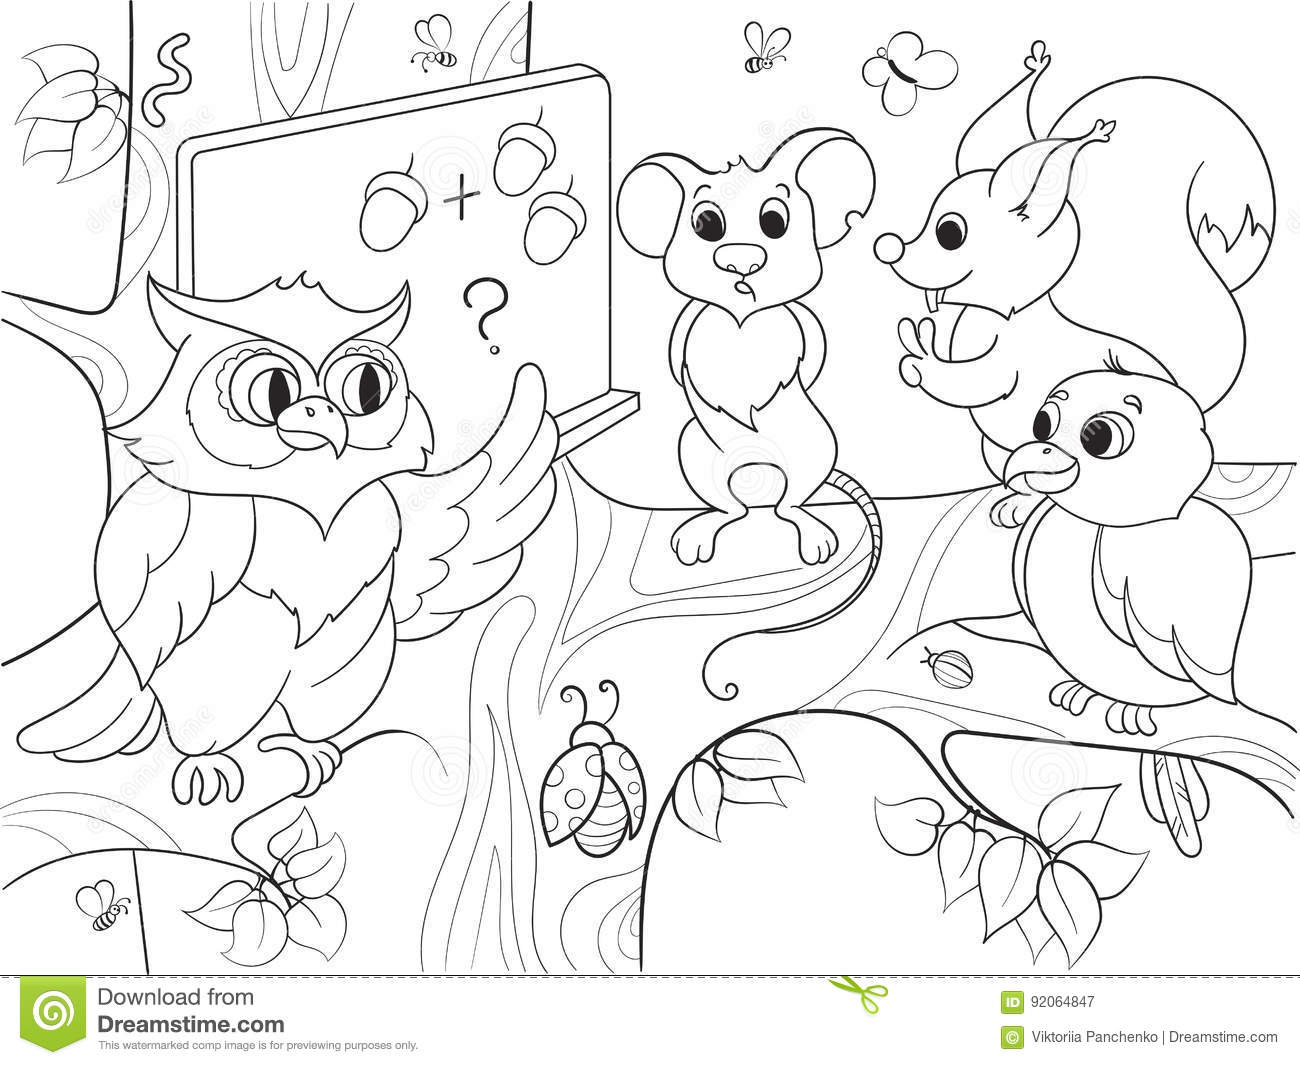 Lesson In The School Of An Owl In The Woods Coloring Book